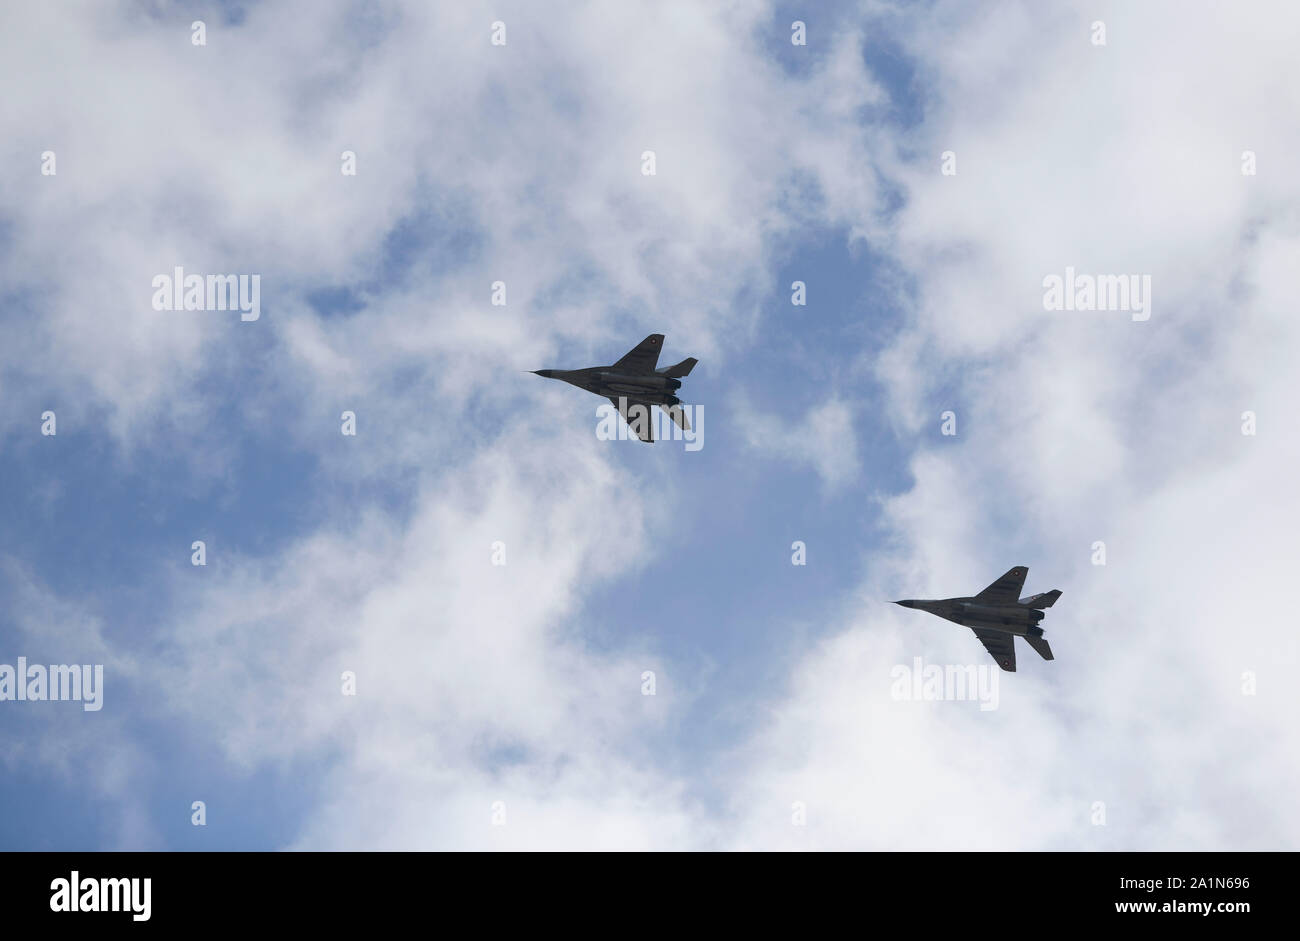 Bulgarian Air Force MiG-29s fly over Graf Ignatievo Air Base, Bulgaria, during exercise Rapid Buzzard Sept. 25, 2019. The 510th Fighter Squadron conducted air-to-air training with Bulgarian MiG-29s and air-to-surface training with Bulgarian Air Defense assets. (U.S. Air Force photo by Senior Airman Savannah L. Waters) Stock Photo